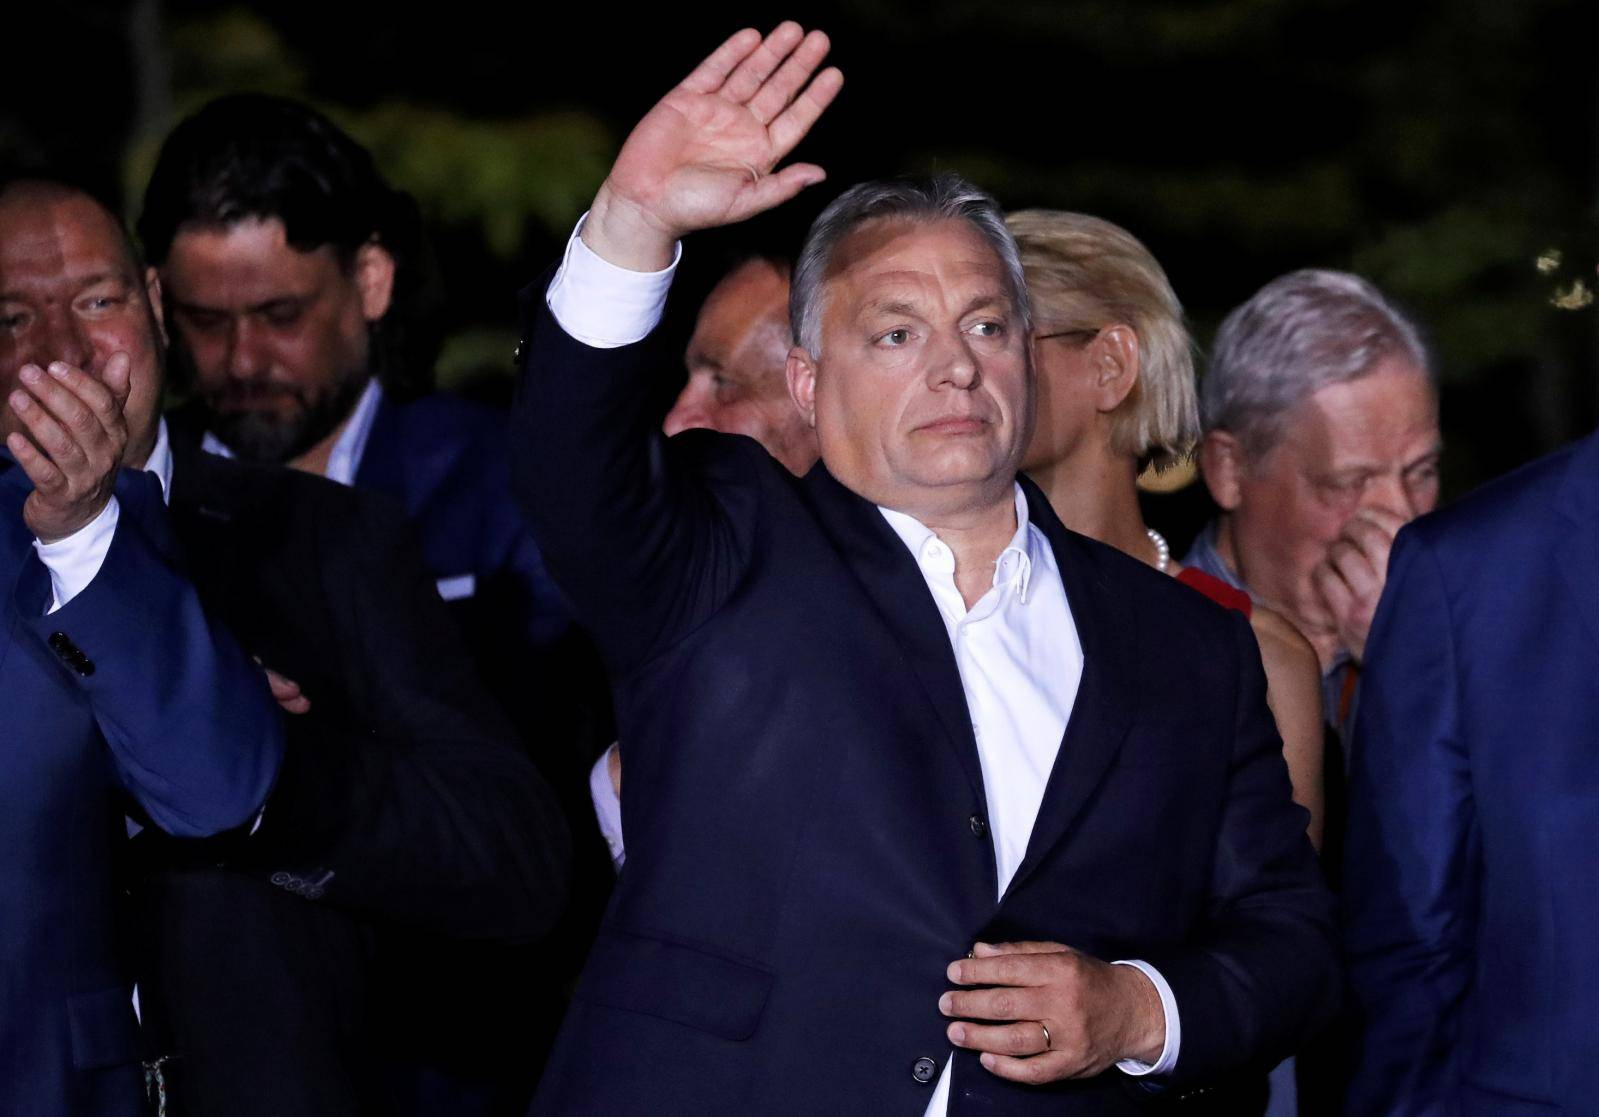 Hungarian Prime Minister Viktor Orban addresses supporters after the preliminary results of the European Parliament election in Budapest